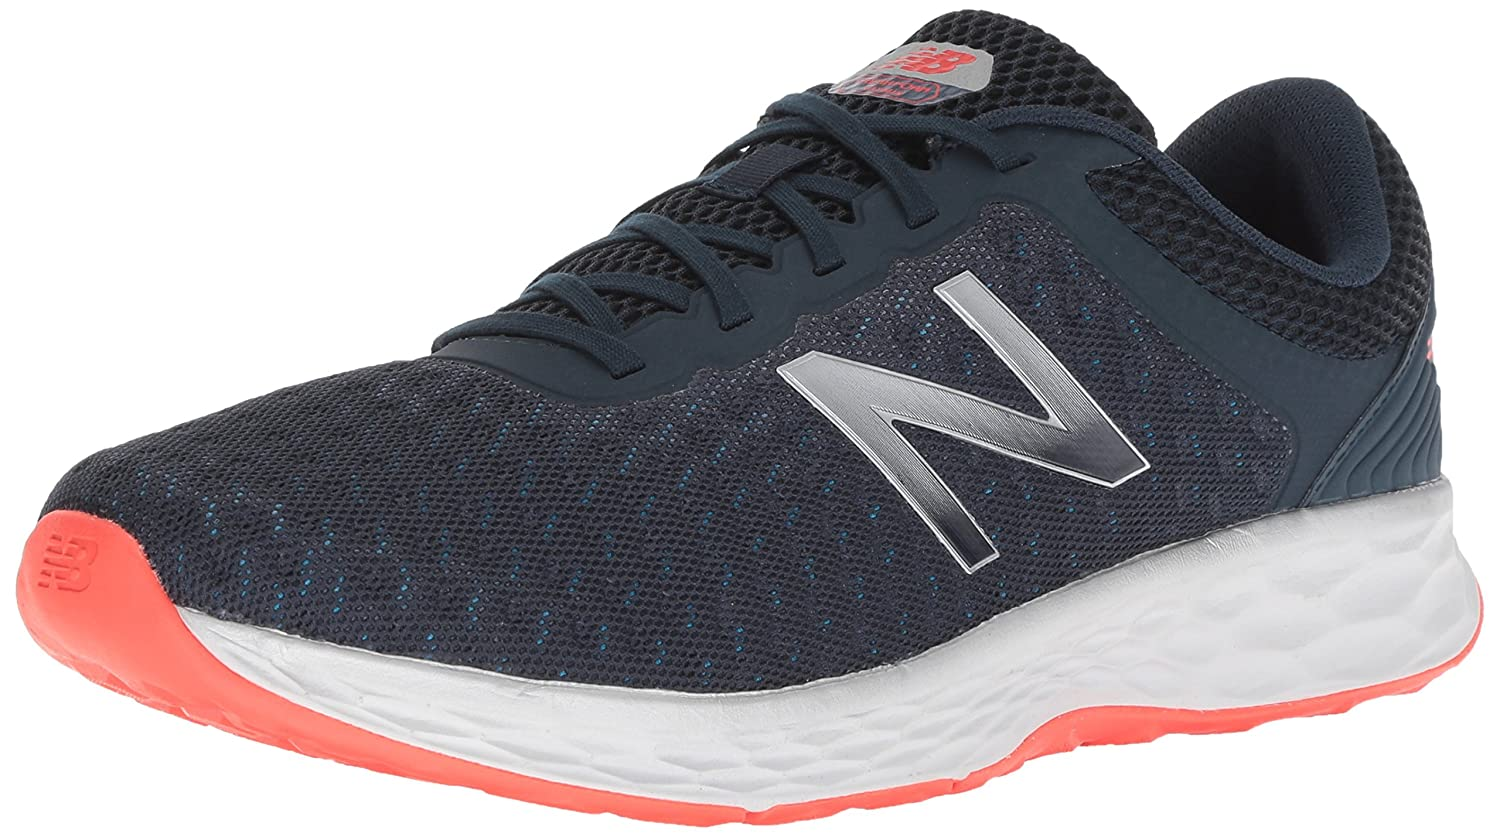 New Balance Men's Kaymin Trail v1 Fresh Foam Trail Running Shoe B075R82LG3 11 4E US|Galaxy